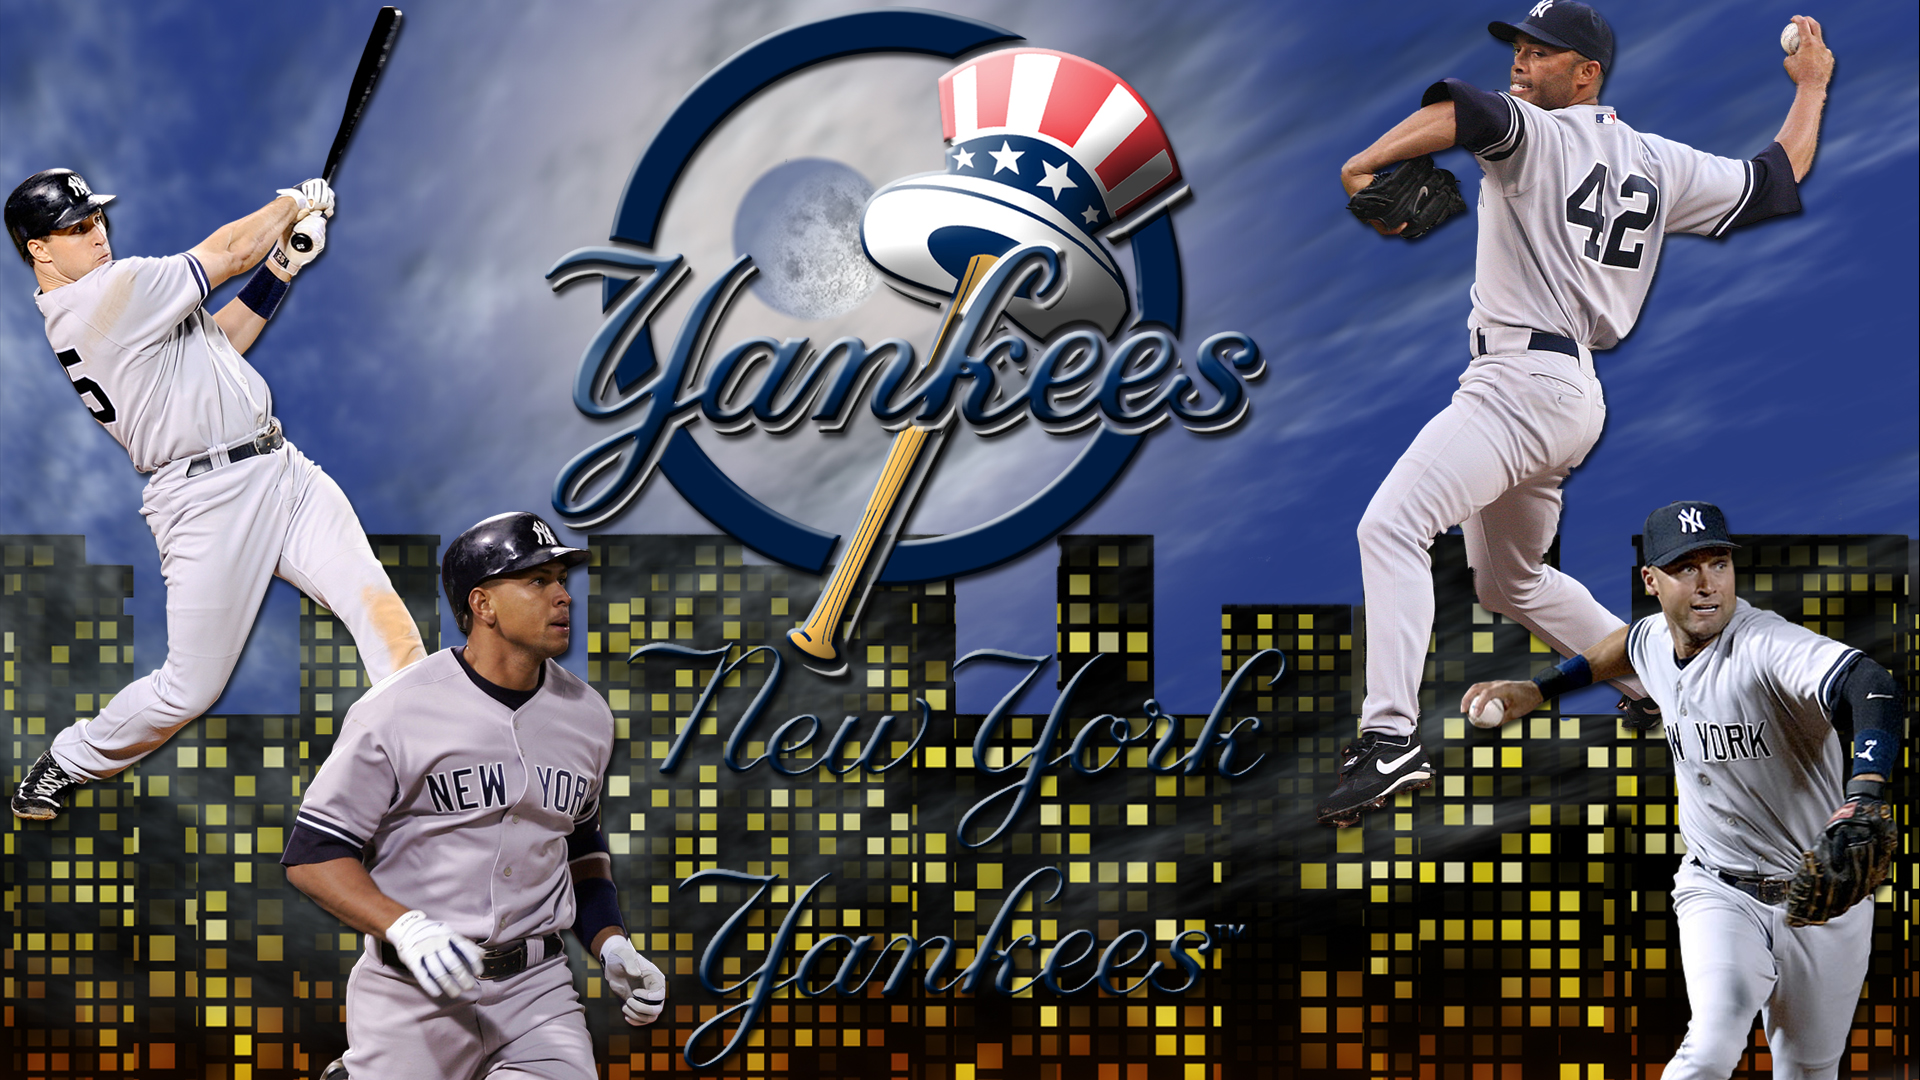 Get the latest New York Yankees news blogs and rumors Find schedule roster scores photos and join fan forum at NJcom